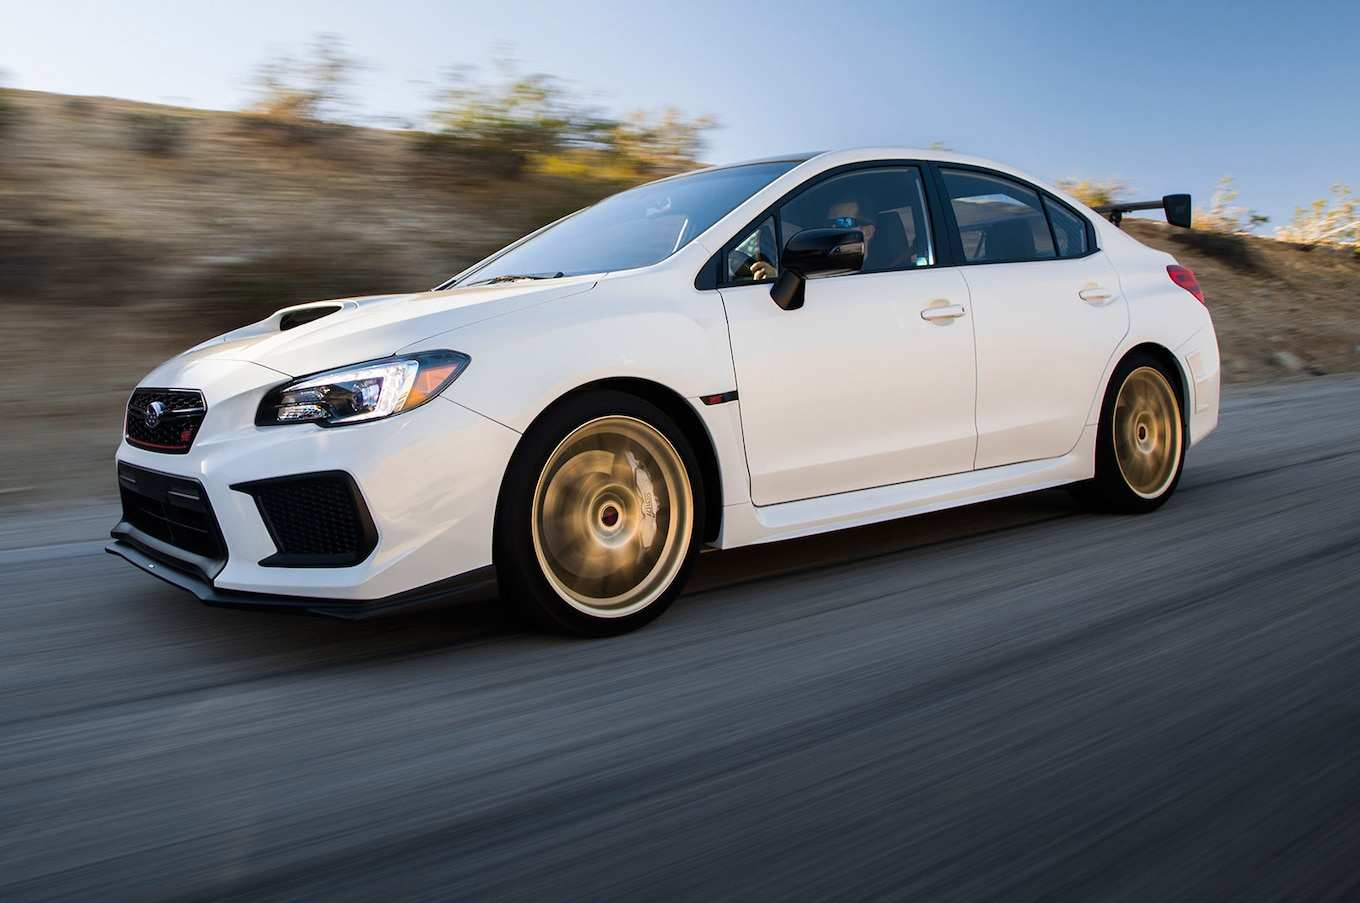 41 Best Review The 2019 Subaru Wrx Quarter Mile Price And Review Spy Shoot for The 2019 Subaru Wrx Quarter Mile Price And Review